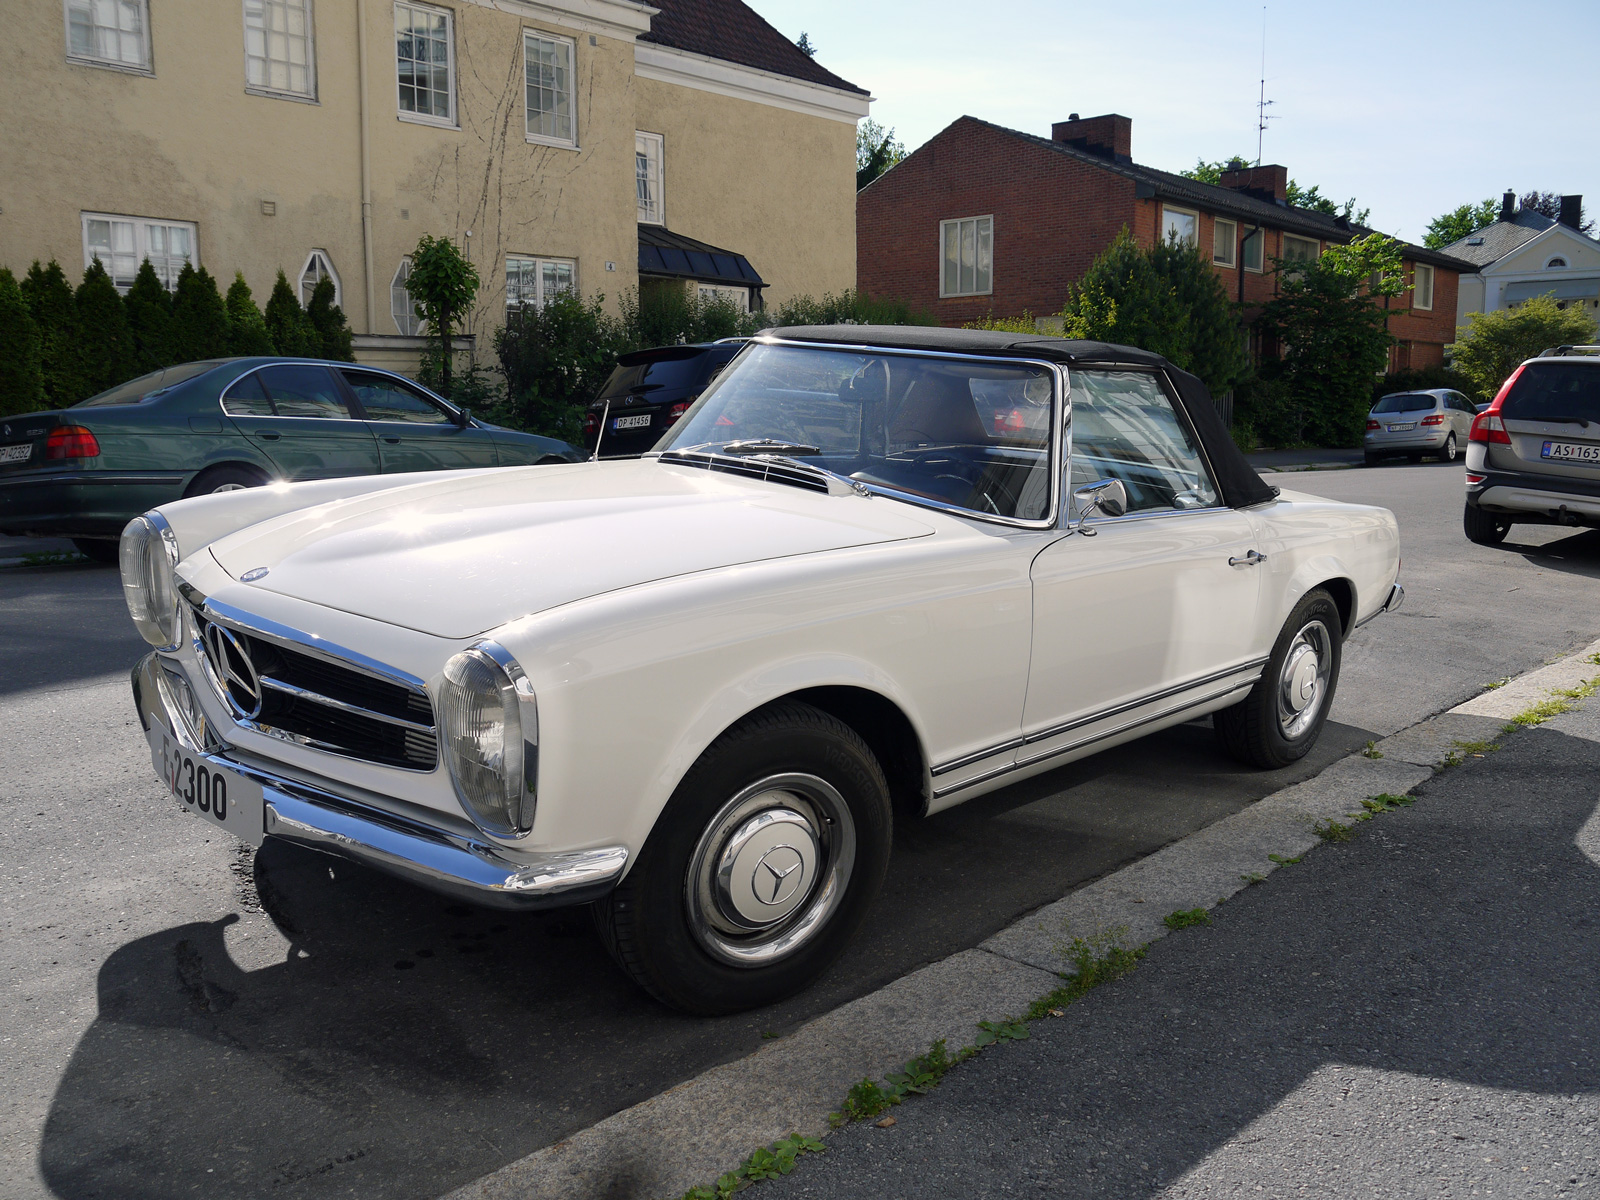 1964 Mercedes-Benz 230 SL W113 Pagoda Roadster Oslo Norway